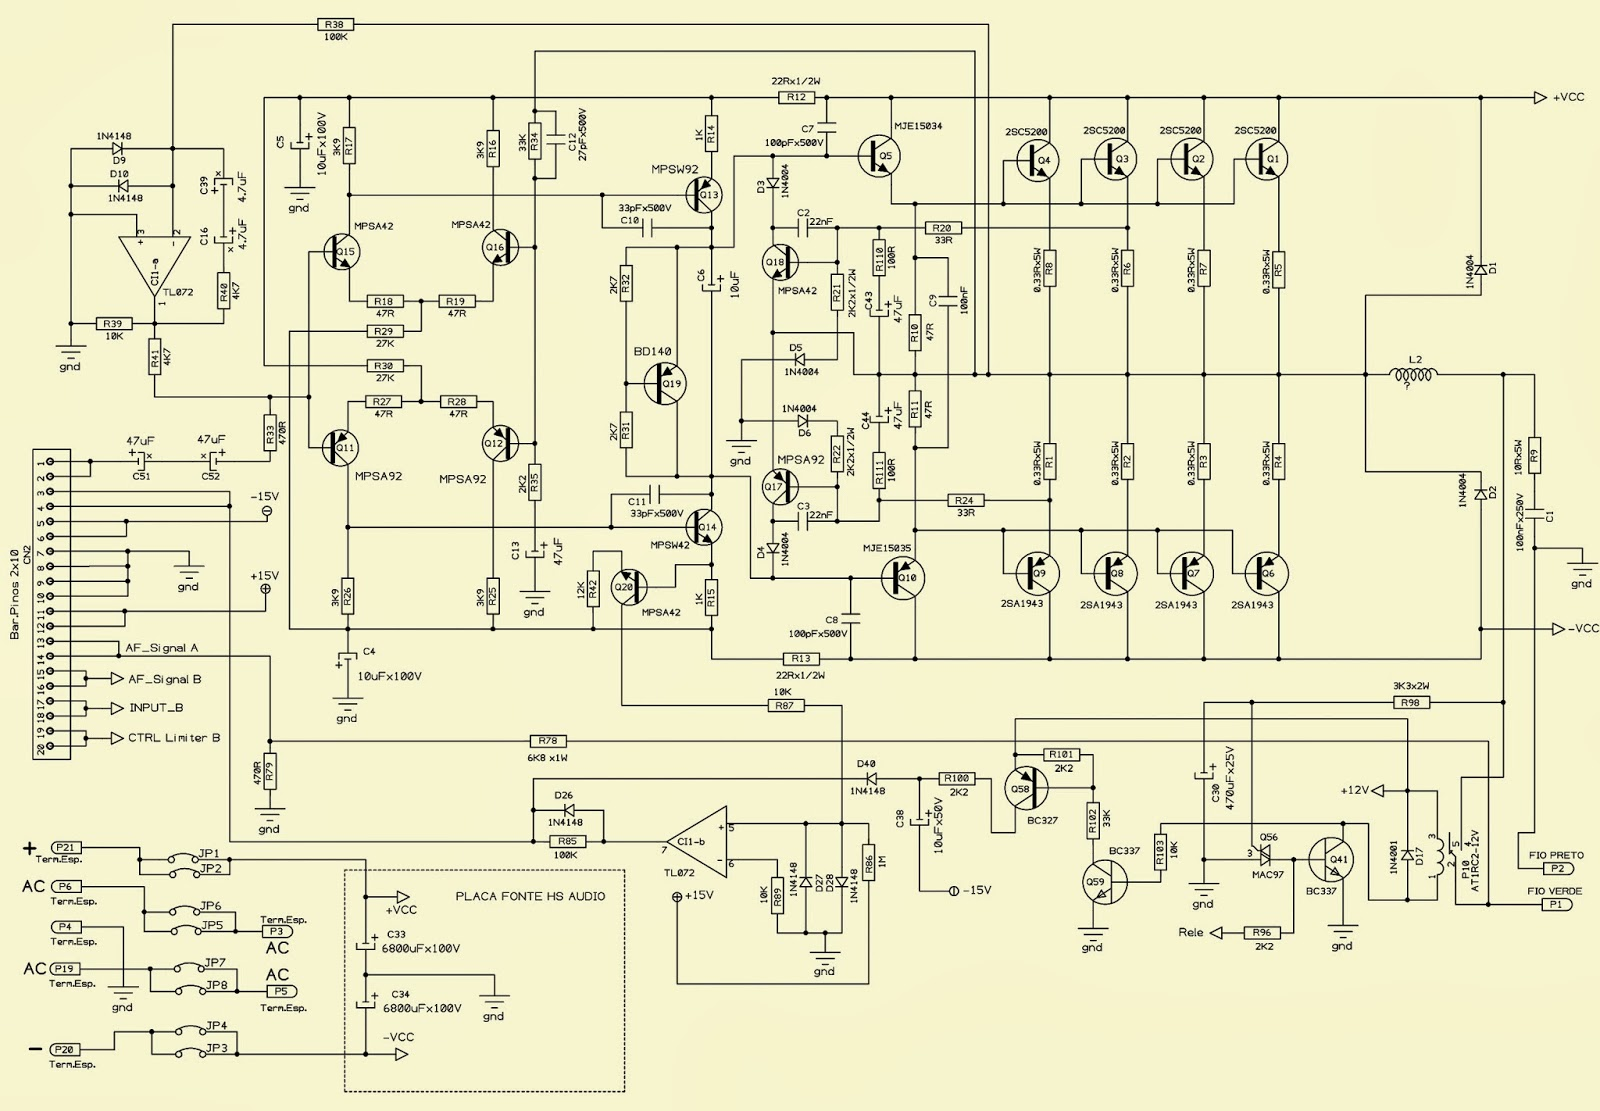 Pro Audio Wiring Diagrams Two Phase Electric Motor Diagram Hotsound Professional Stereo Hs 2600 Schematic